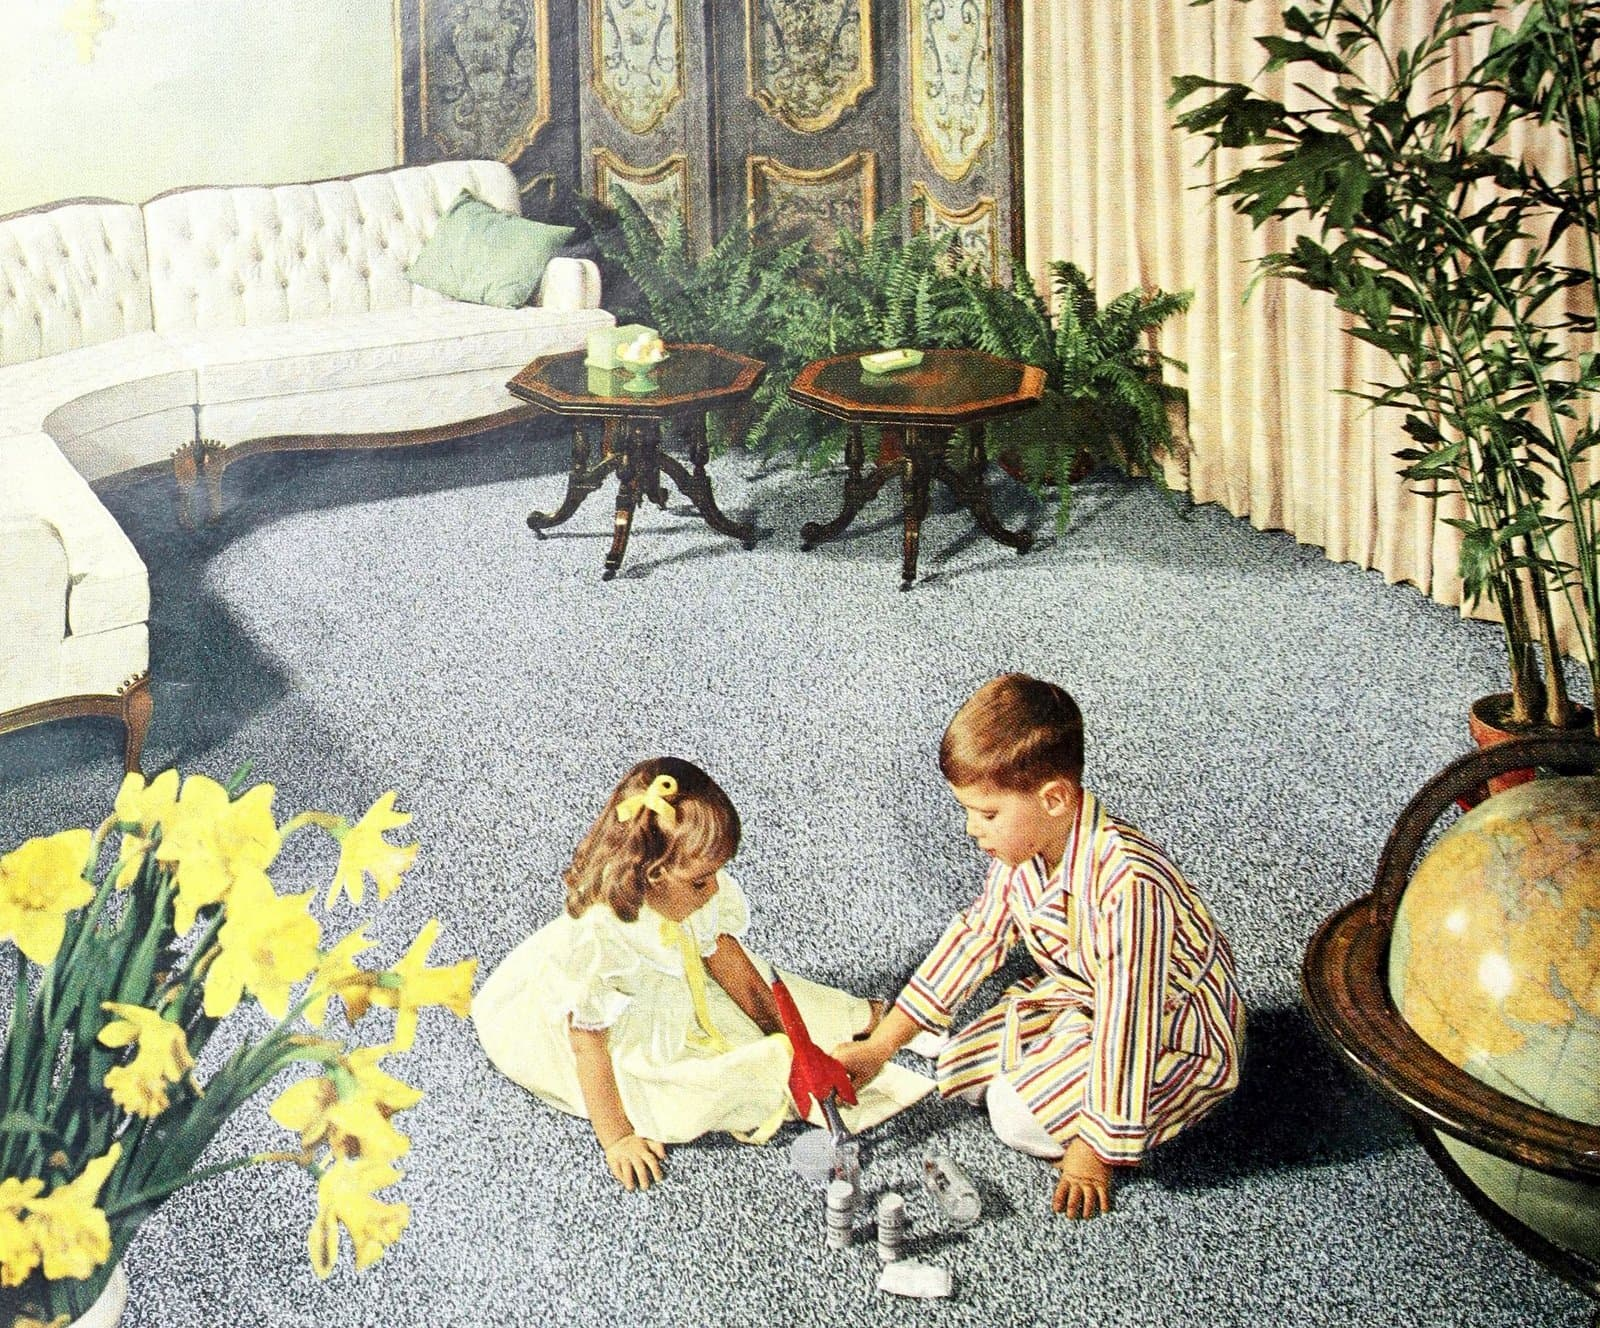 Two kids playing on wall-to-wall carpeted living room (1960)